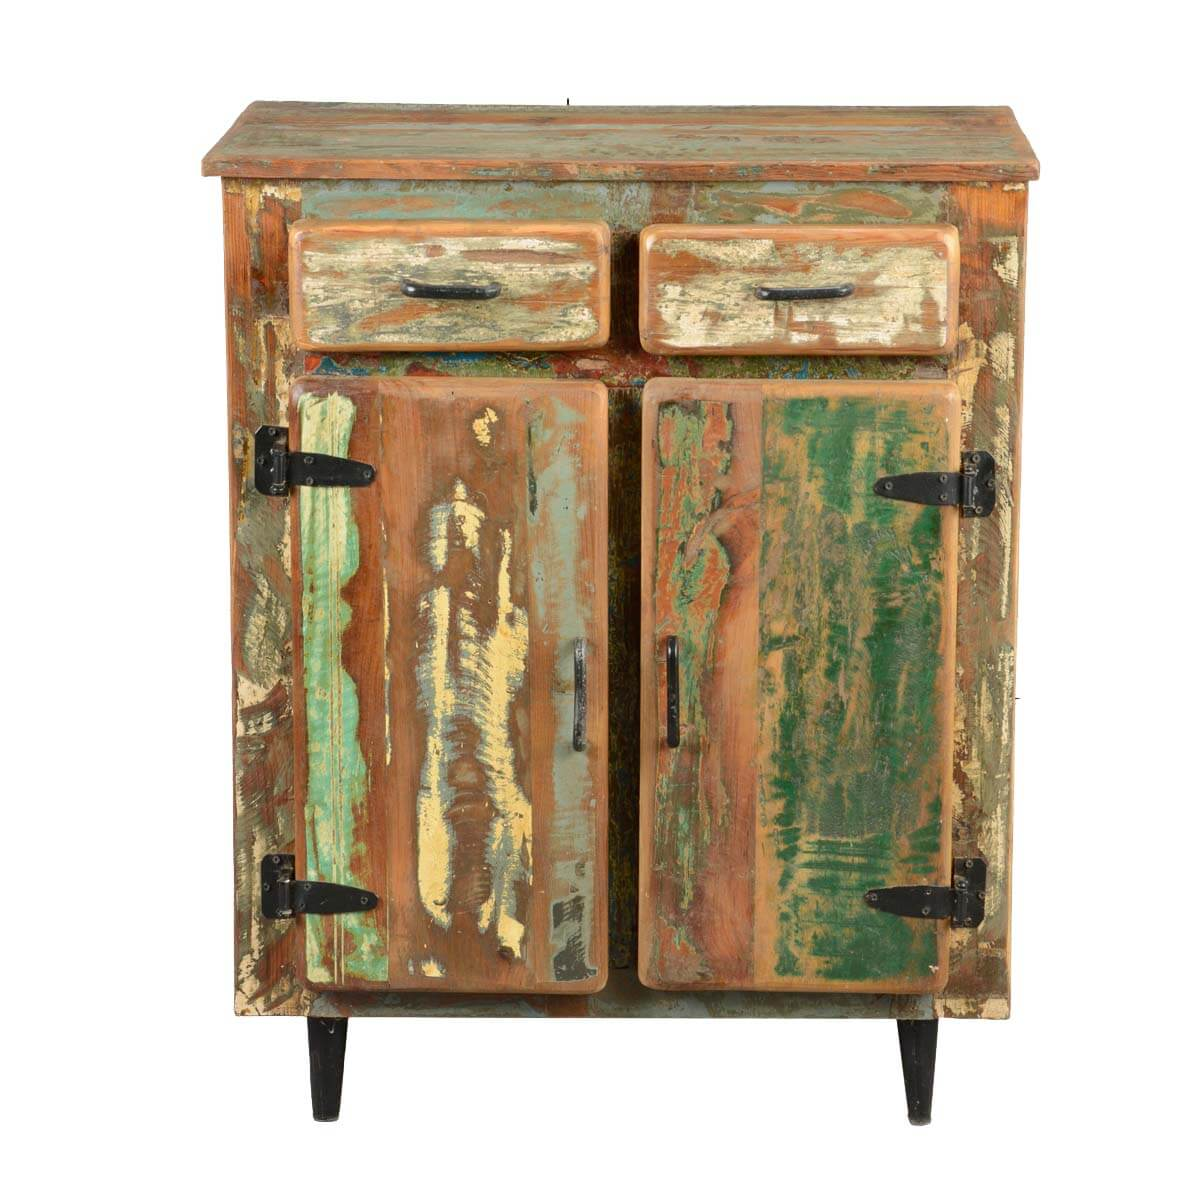 Cabinets & Rack Appalachian Rustic Painted Old Wood Standing Kitchen